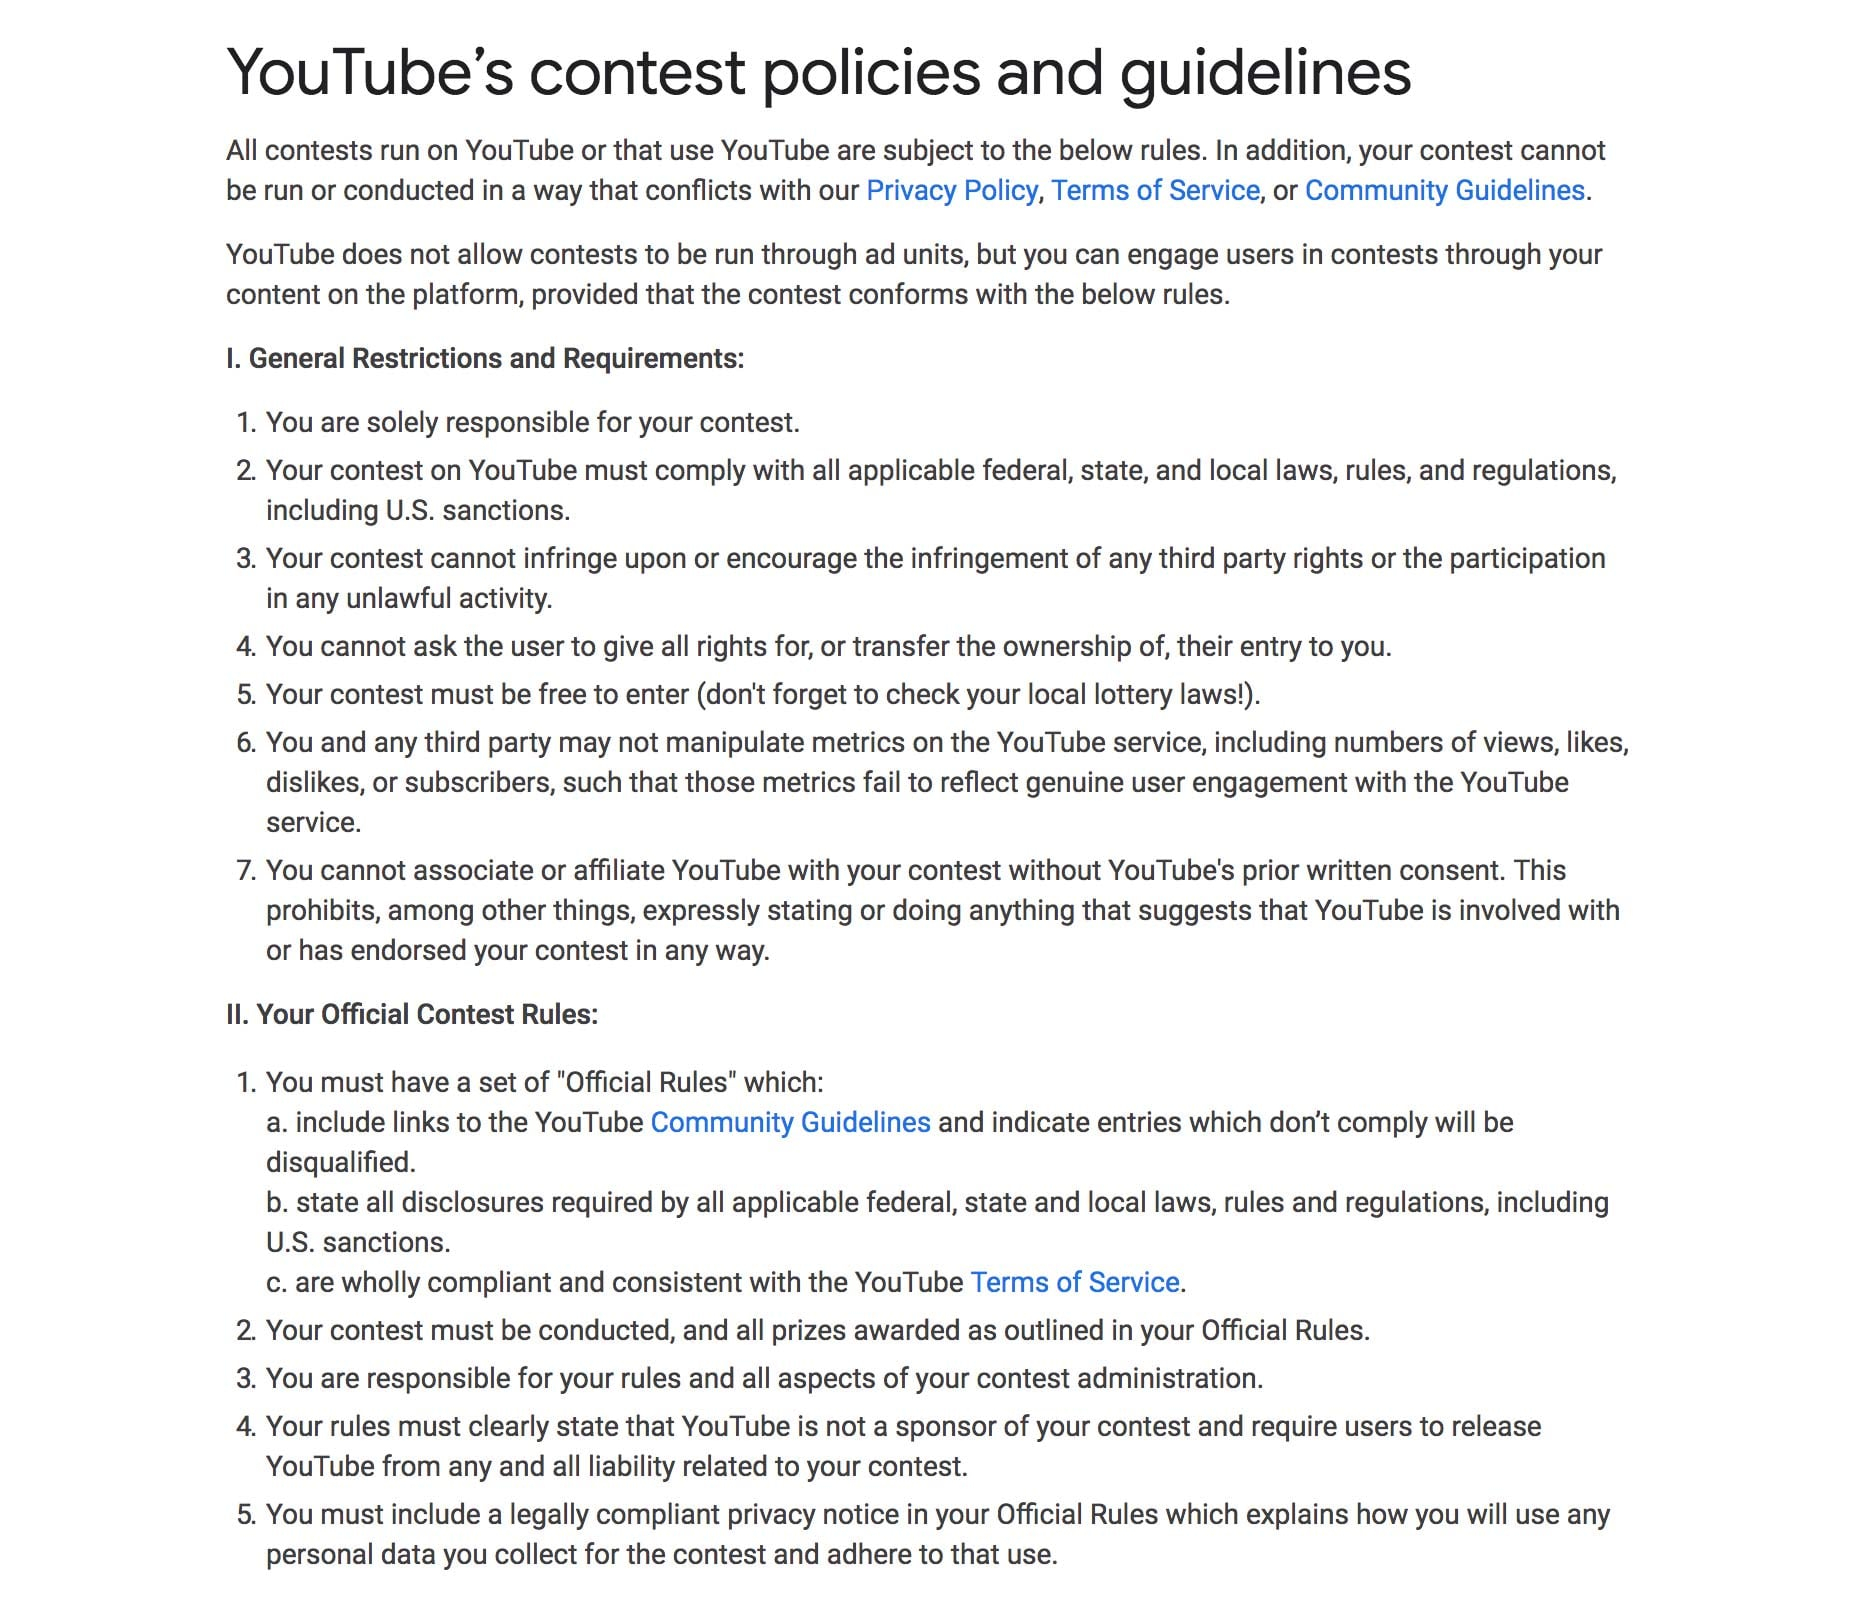 YouTube's contest promotional guidelines